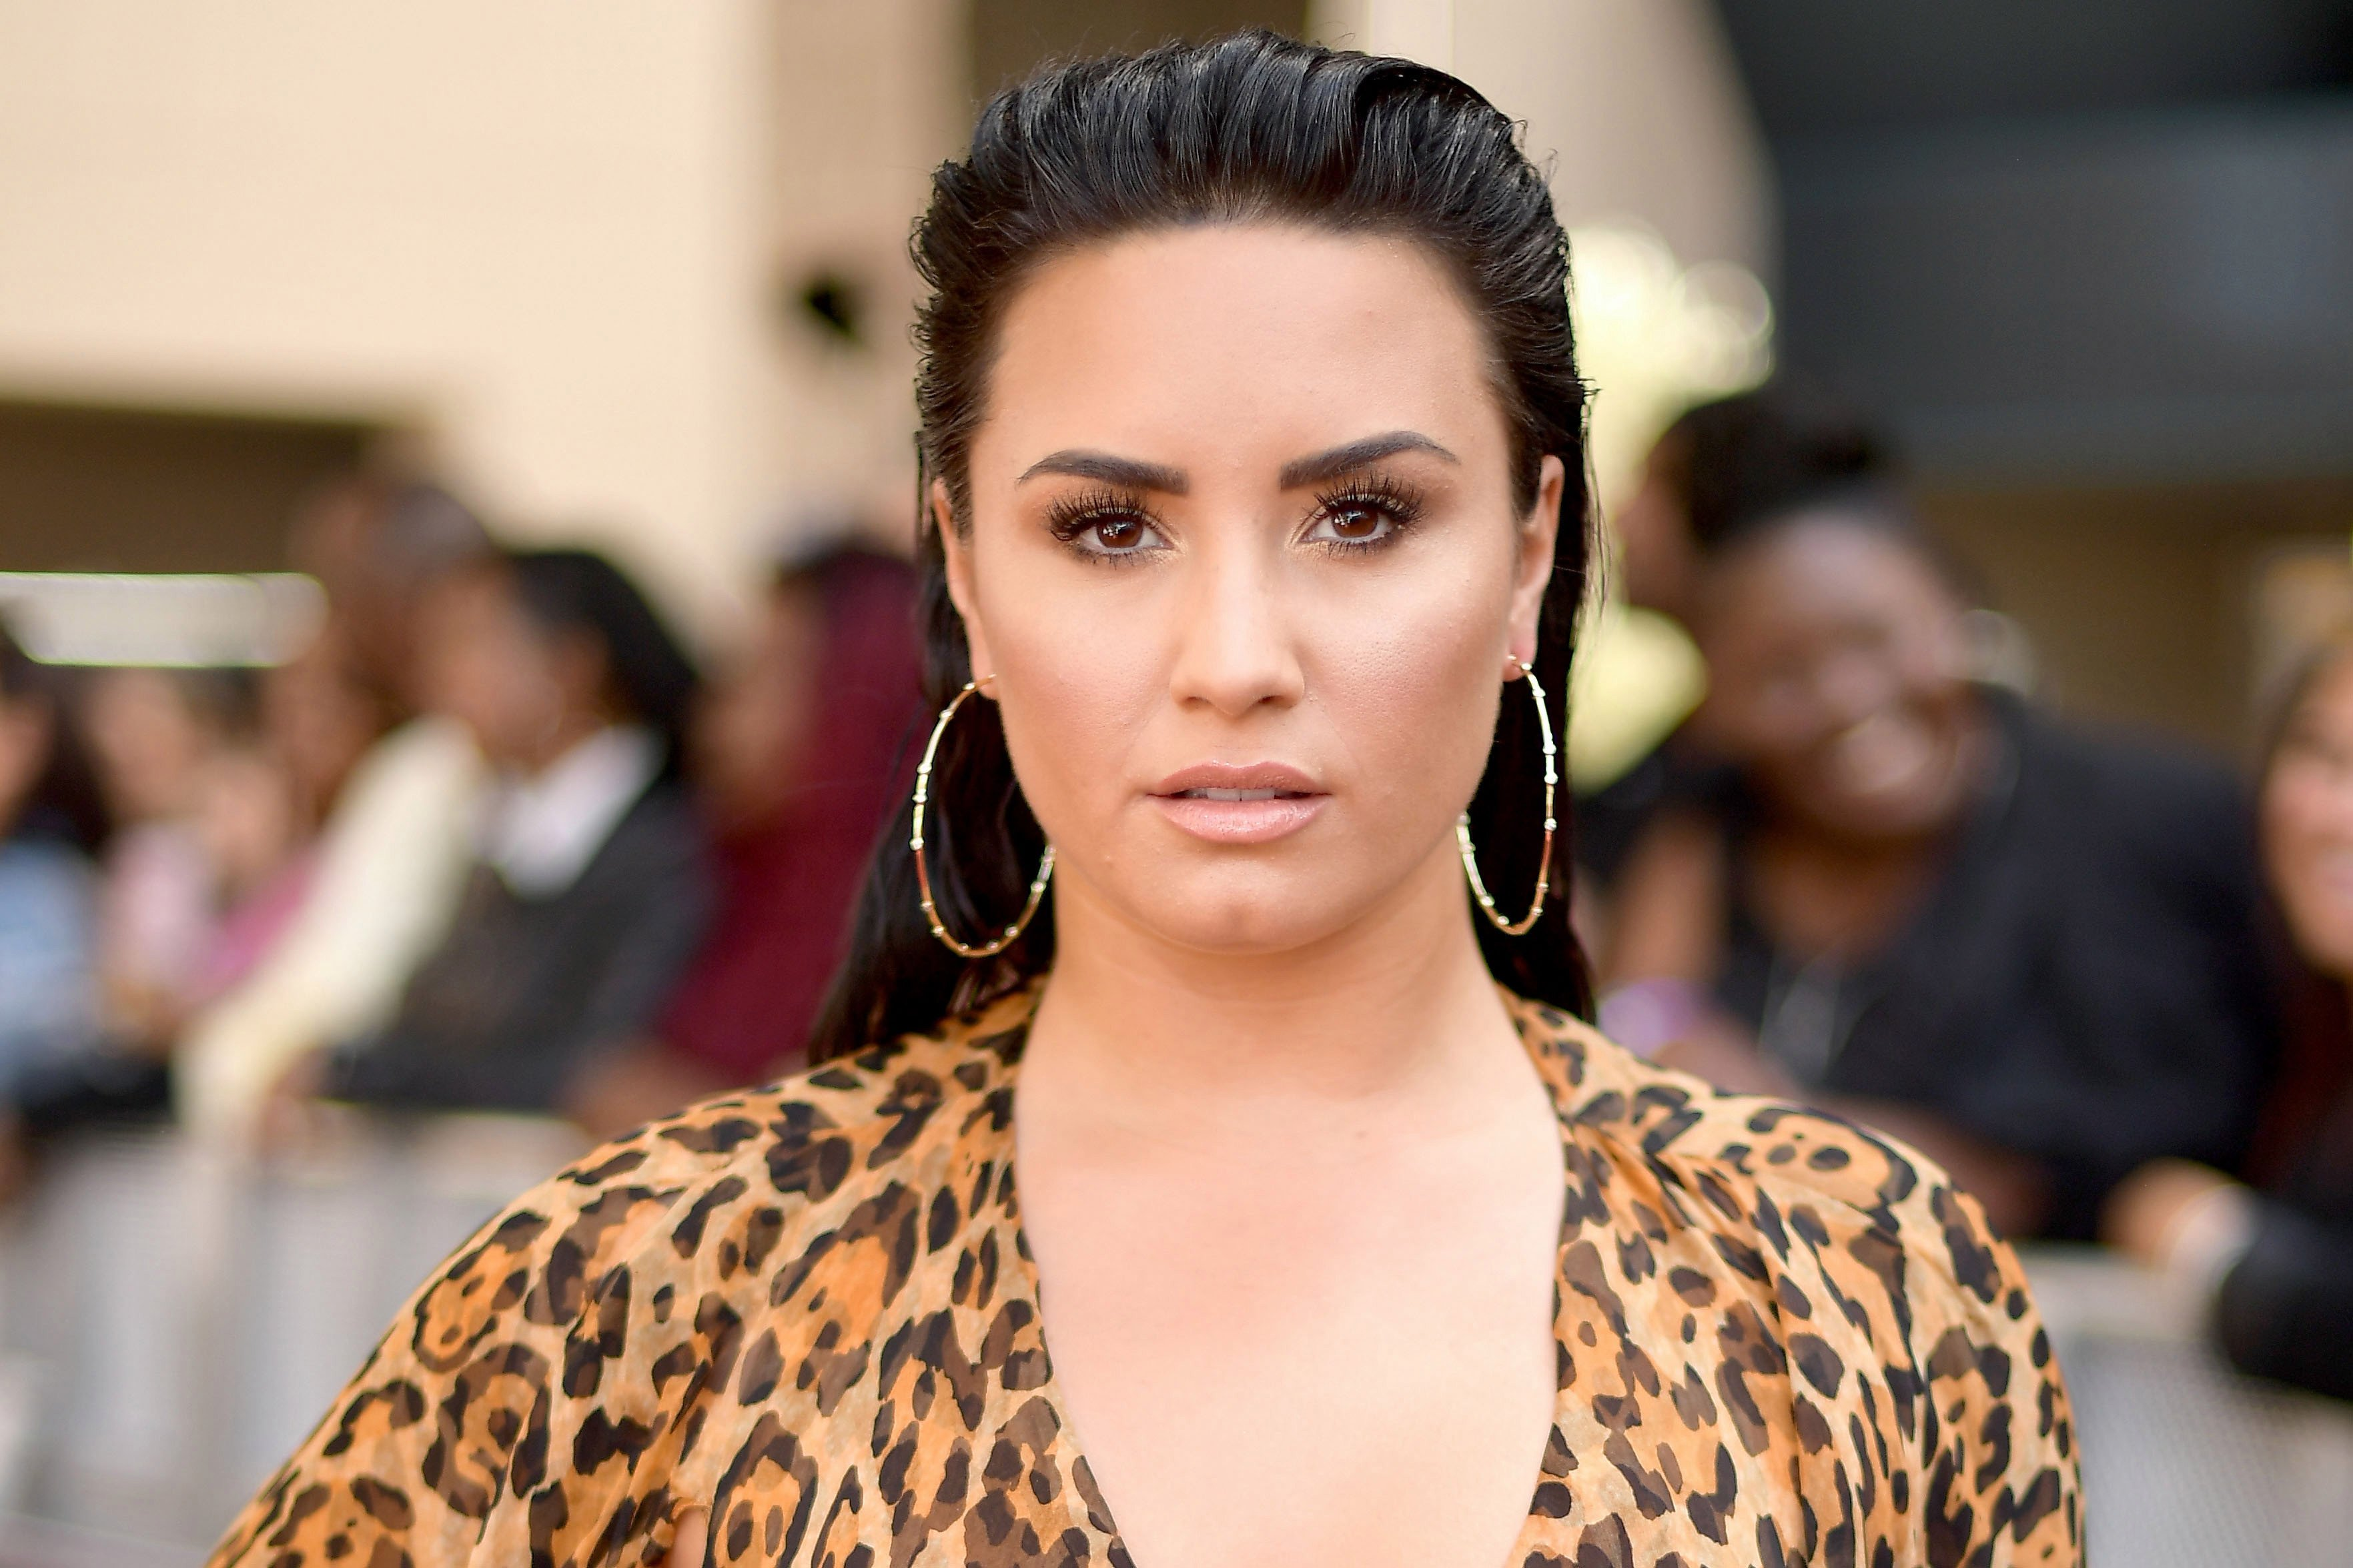 Demi Lovato sounds off on rumors, tabloids in Twitter rant